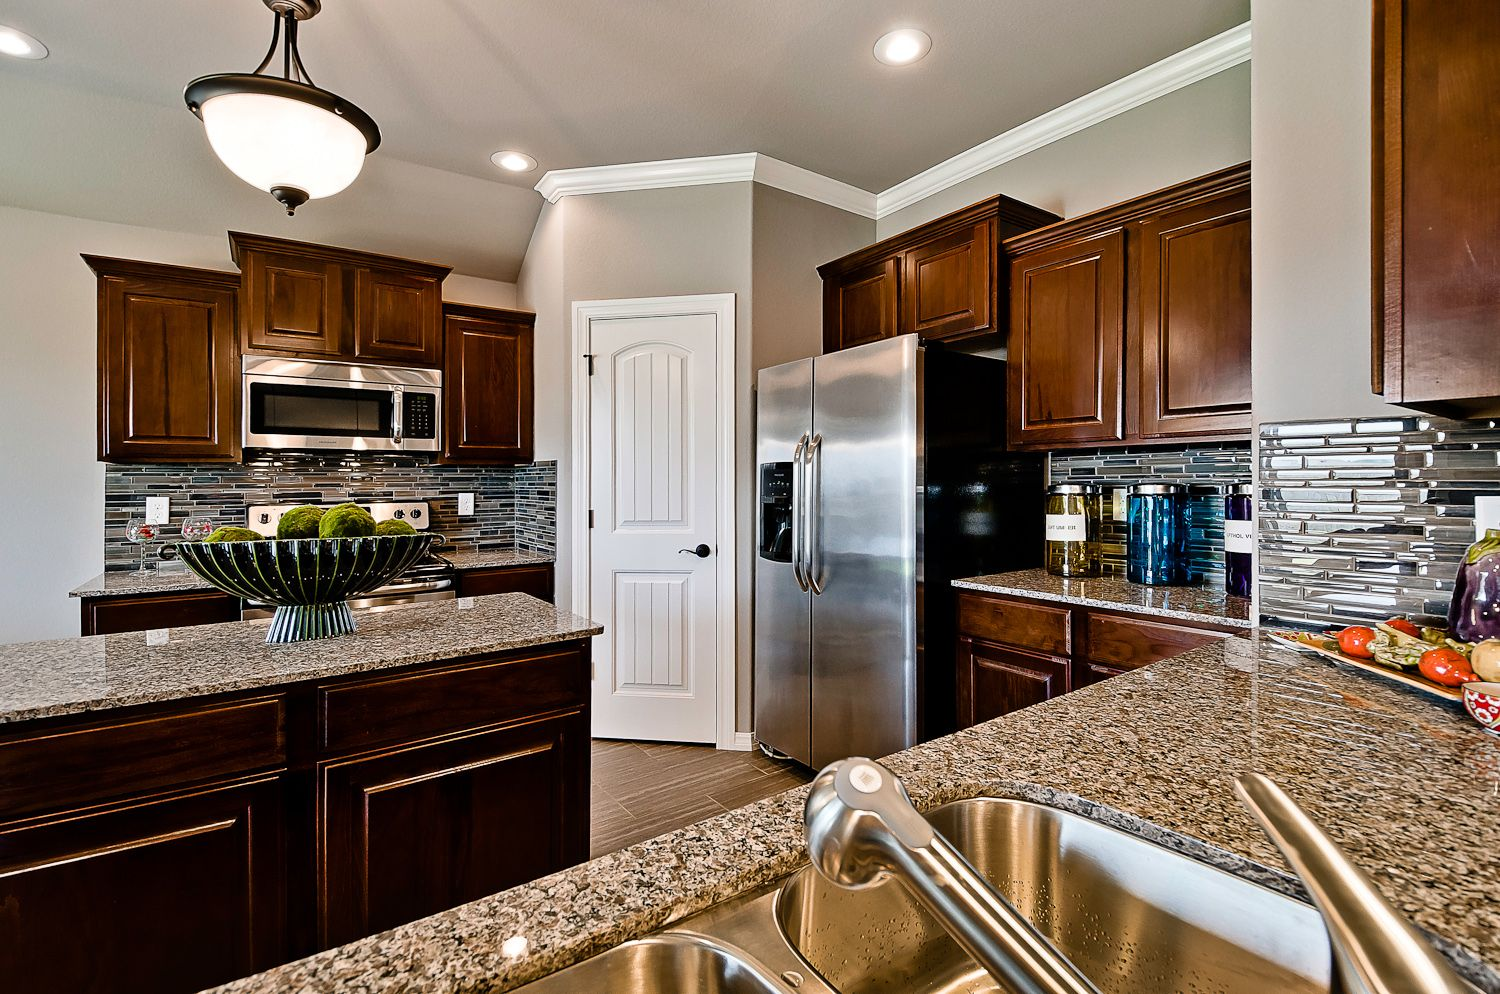 Kitchen featured in the Magnolia 1556 By Riverwood Homes - Arkansas in Fayetteville, AR